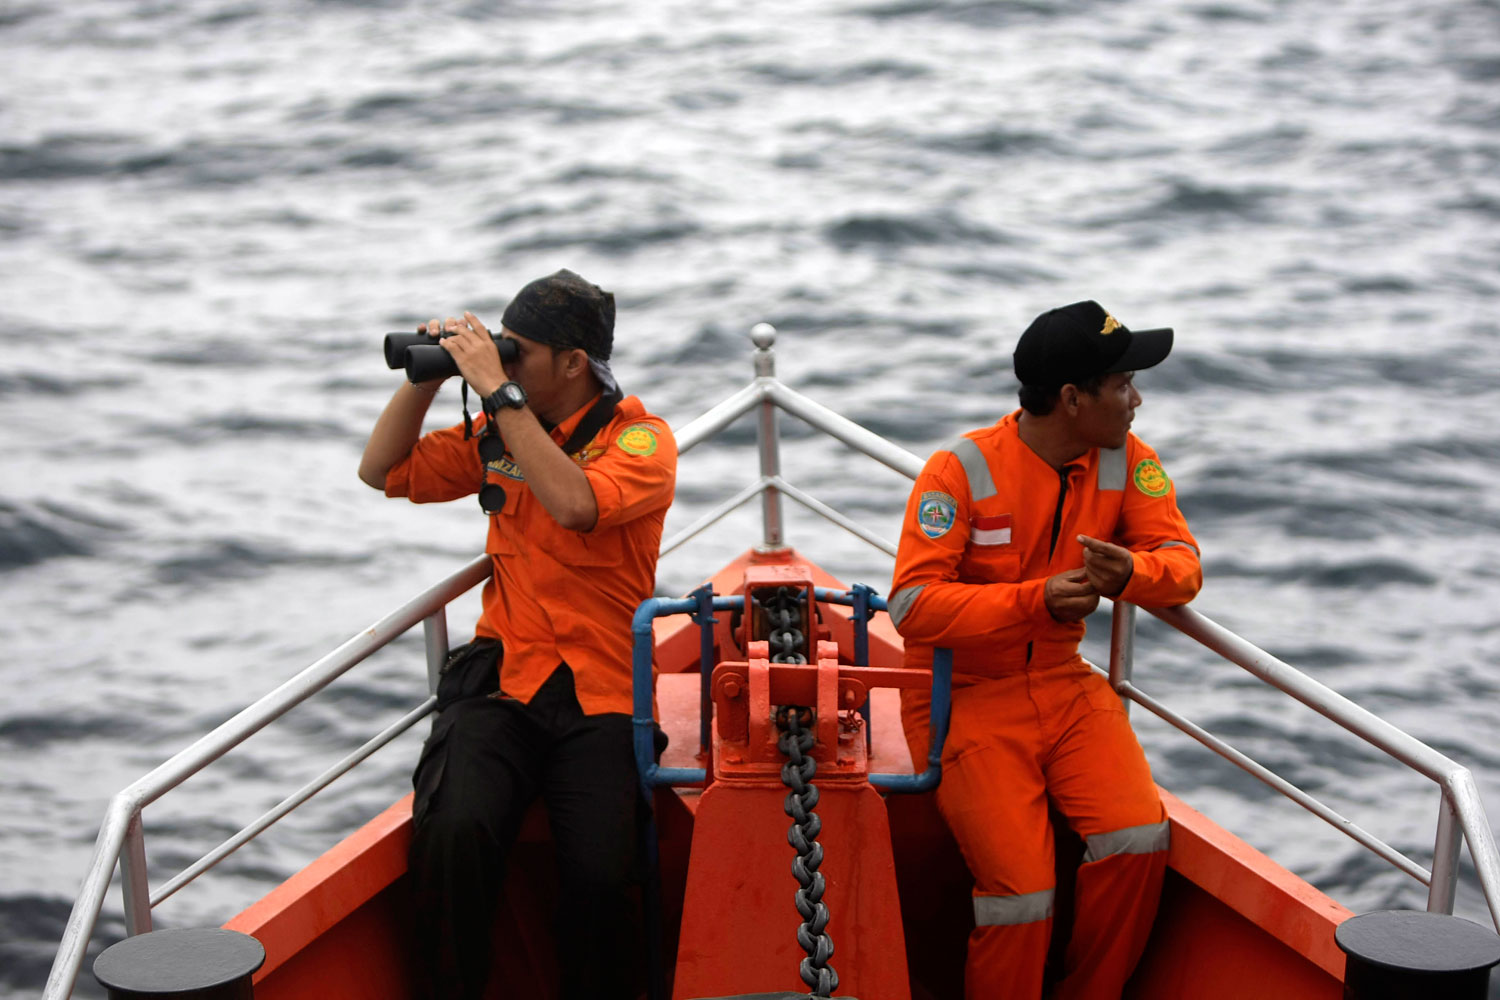 Indonesian Search And Rescue (SAR) personnel keep a lookout on a rescue ship that is heading to the Andaman sea conducting a search operation for the missing Malaysian Airlines plane flight MH370, in the Indian Ocean, near the tip of Sumatra Island, Indonesia, March 15 2014.